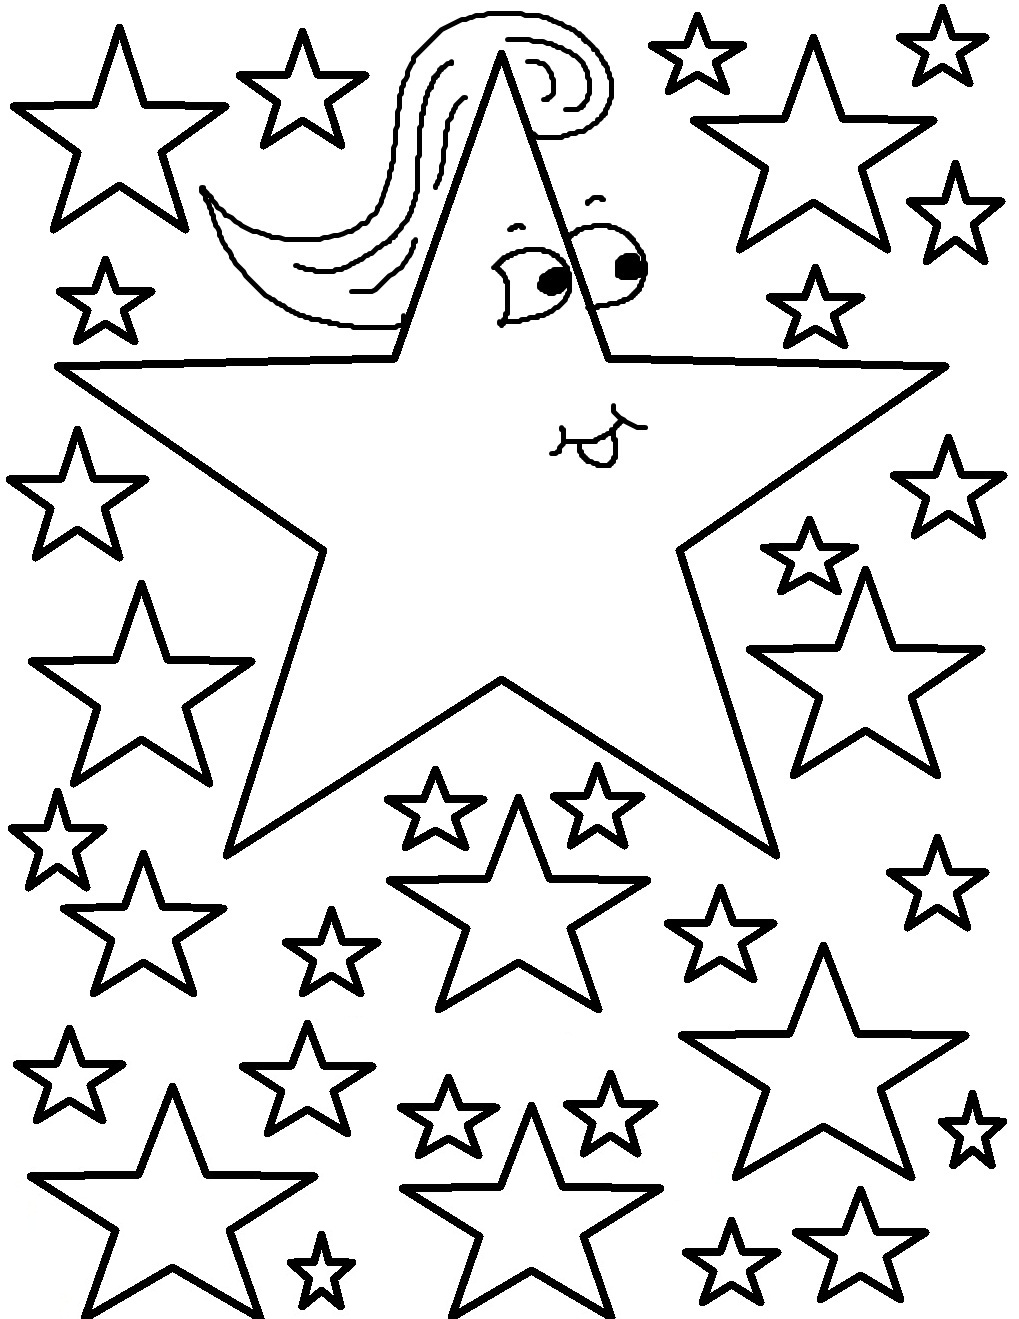 colouring pages of stars top 20 free printable star coloring pages online pages colouring stars of